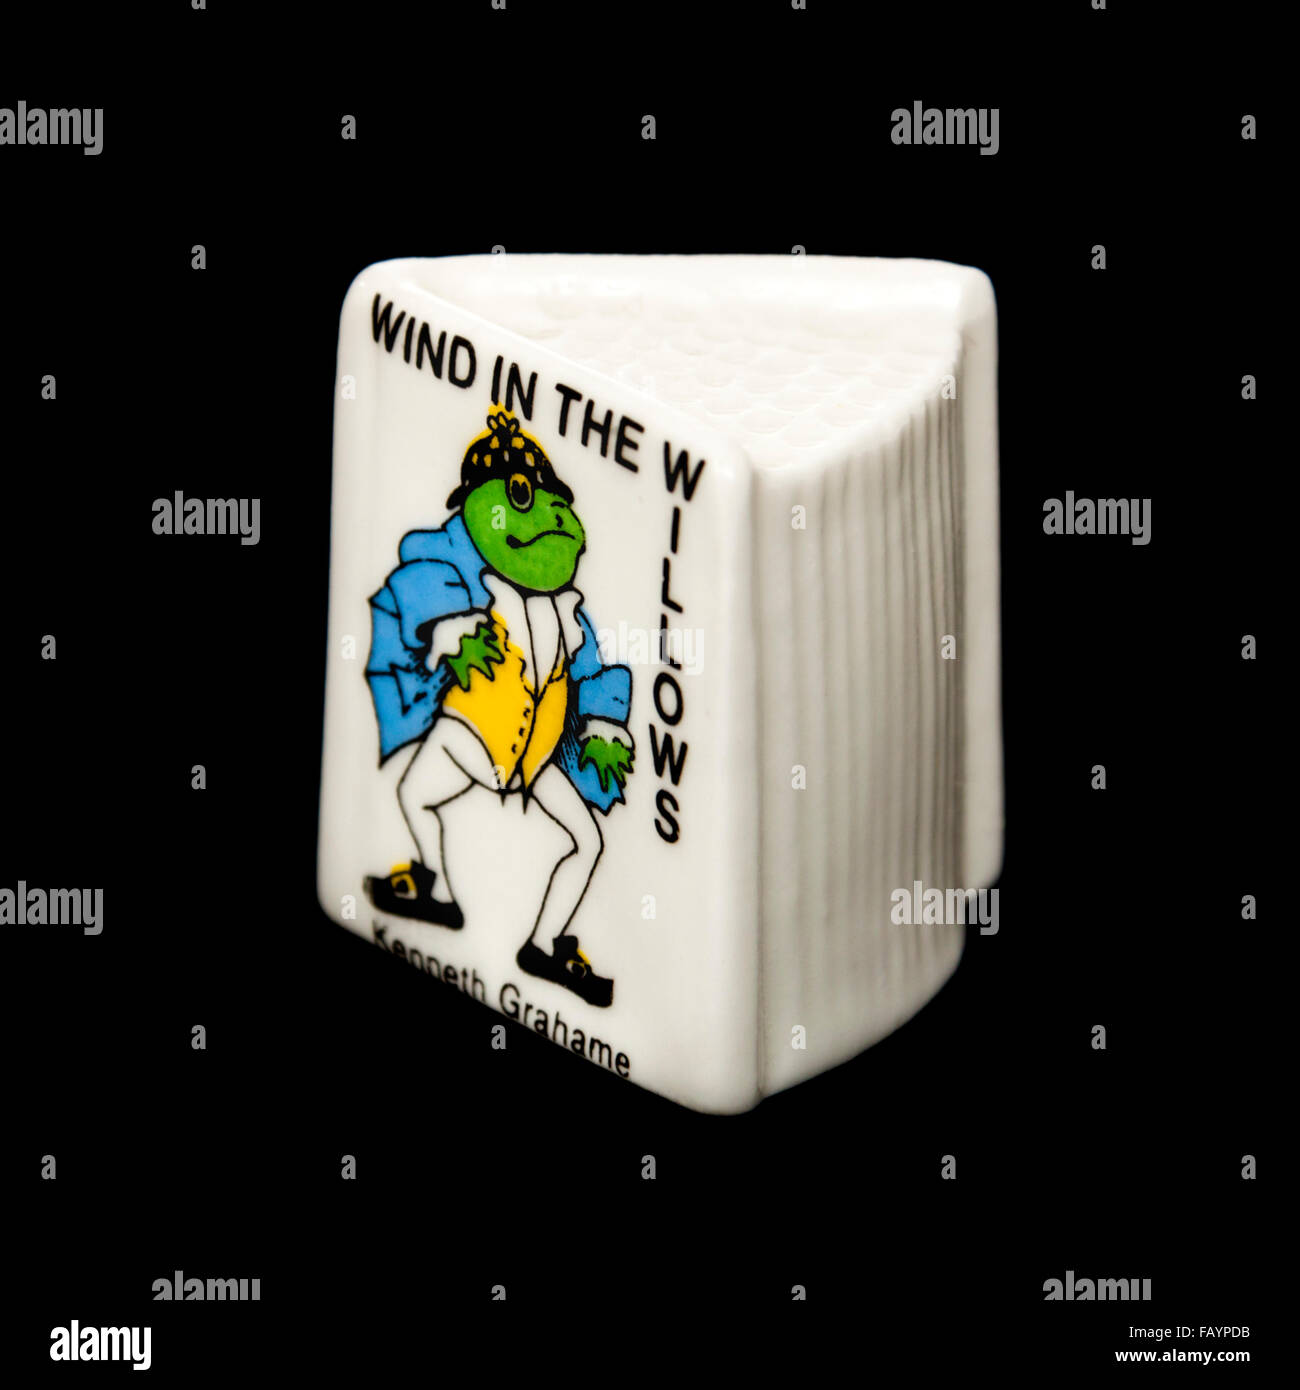 Wind in the Willows themed porcelain thimble by Beechcroft China - Stock Image